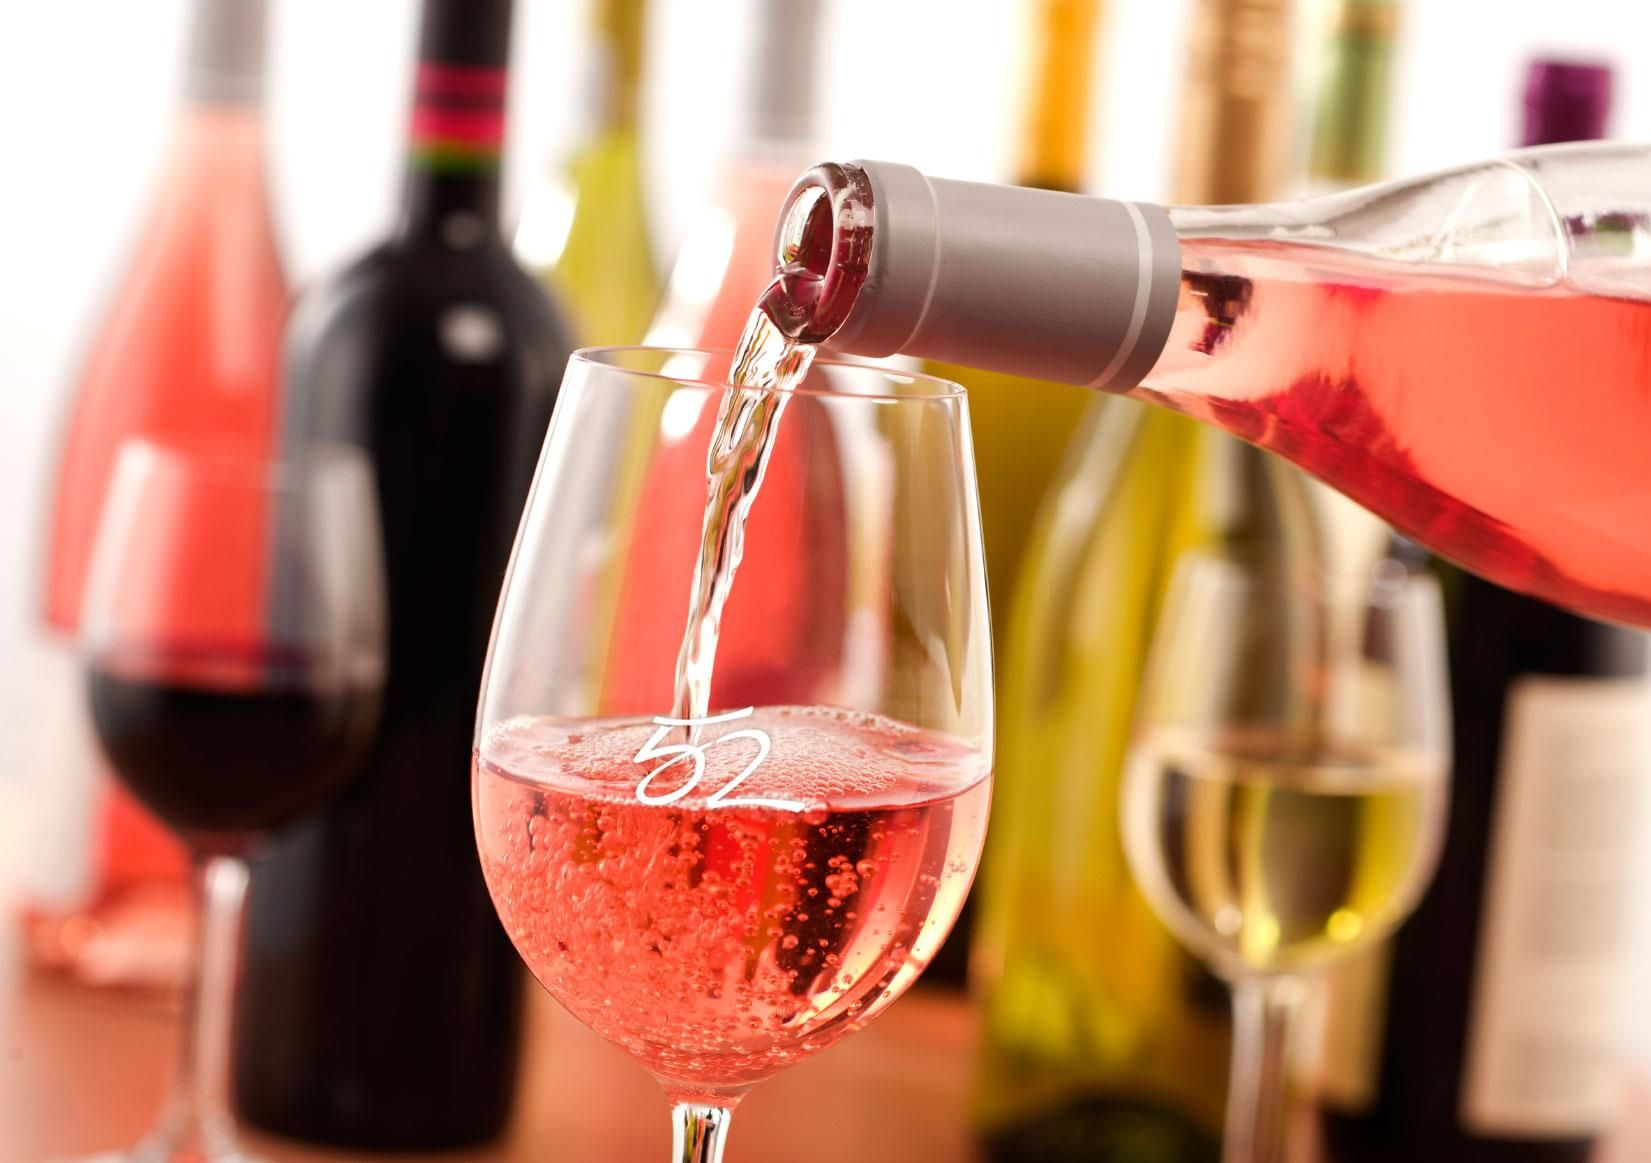 Enjoy #Rose all day, every day